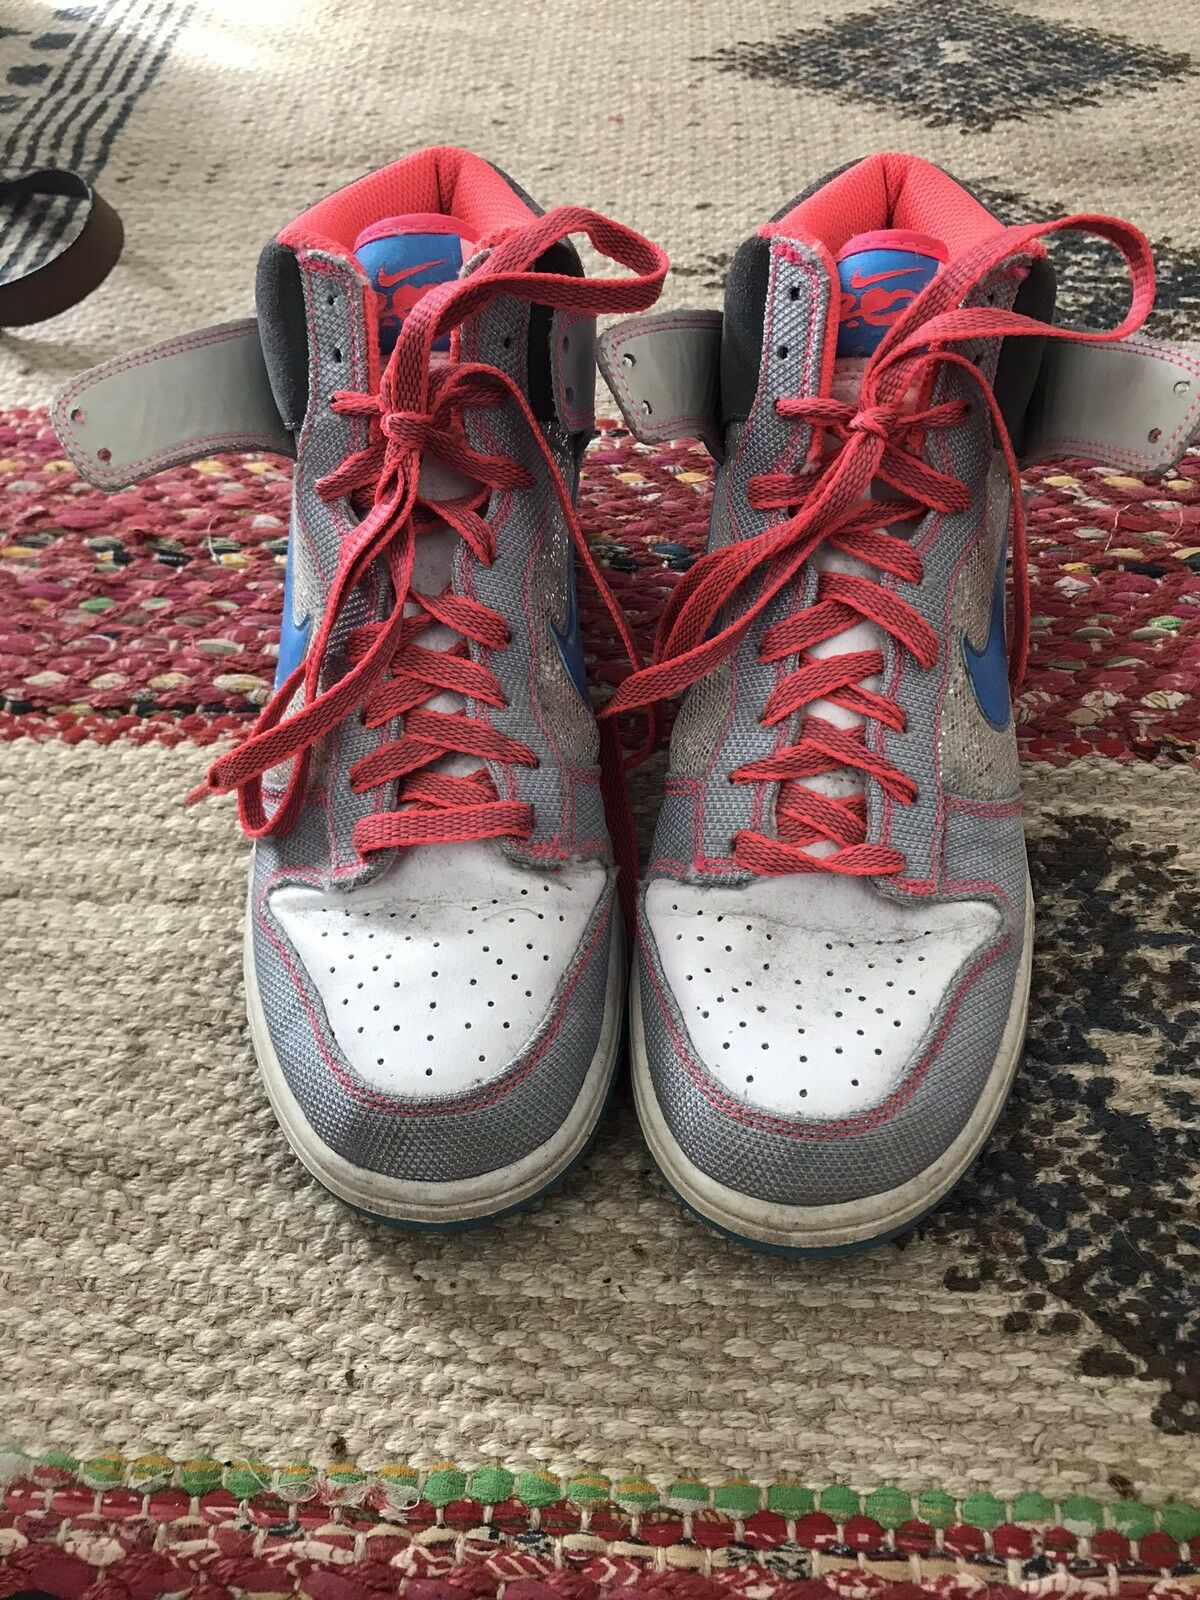 Girls Nike Dunk Hightops 6.0 High 8 GS Silver Shoes Sneakers Basketball Sparkle